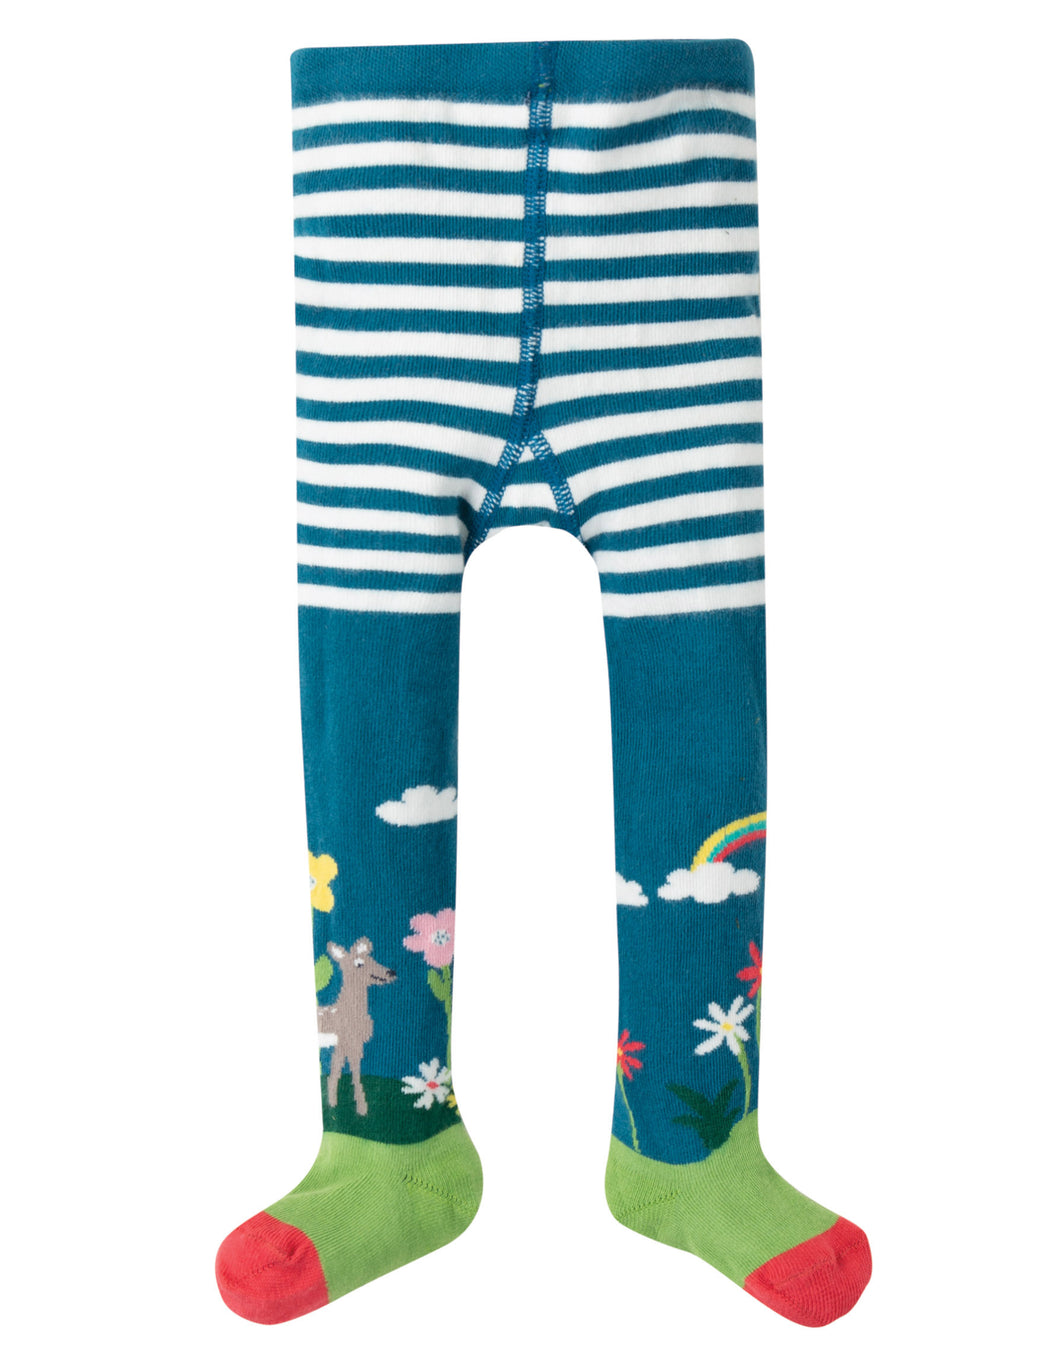 Frugi little norah tights with bunny print and green and red feet